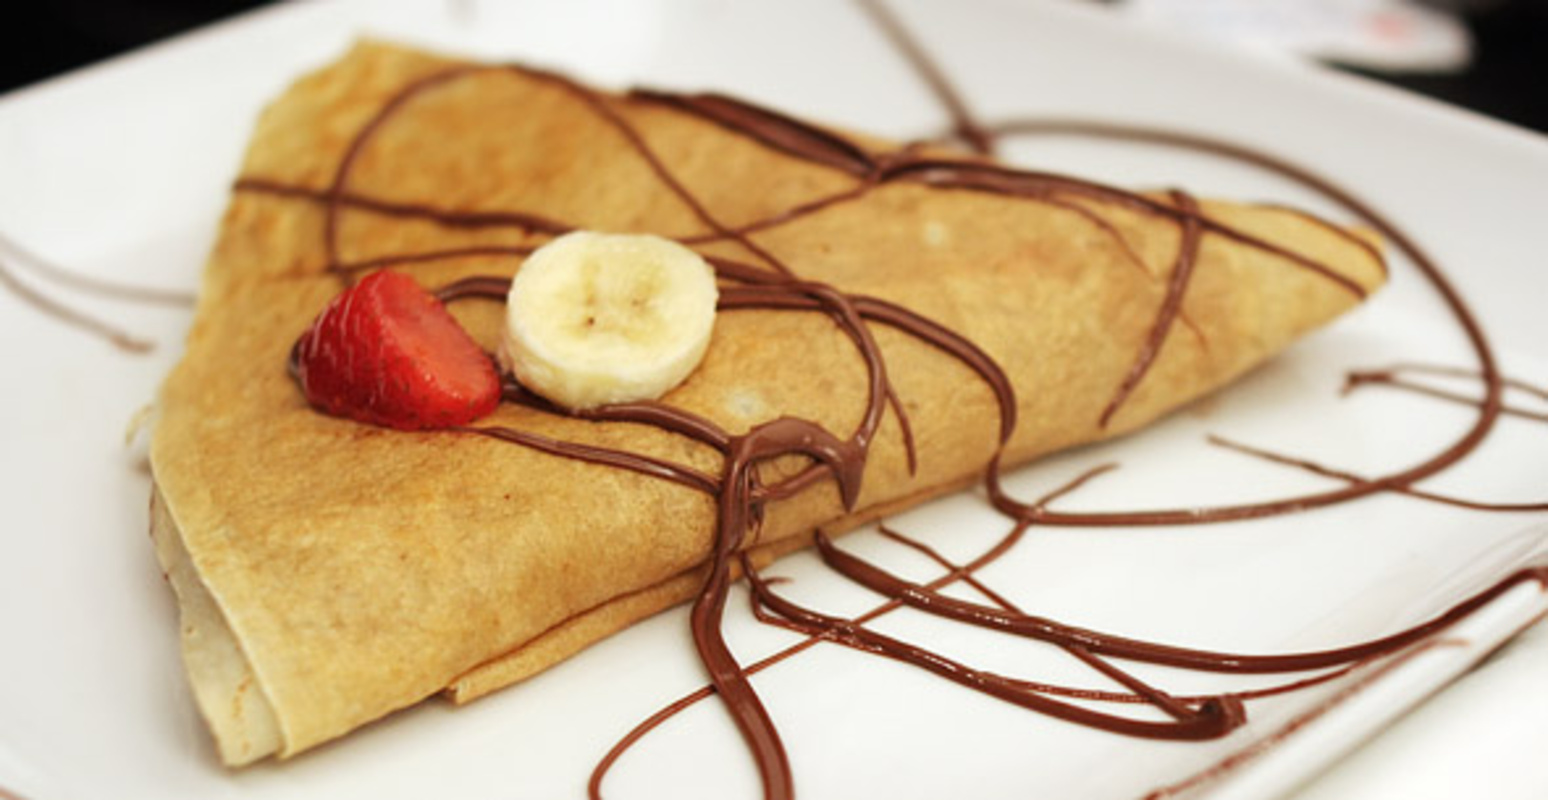 Celeste Crepe at I Feel Like Crepe in Toronto